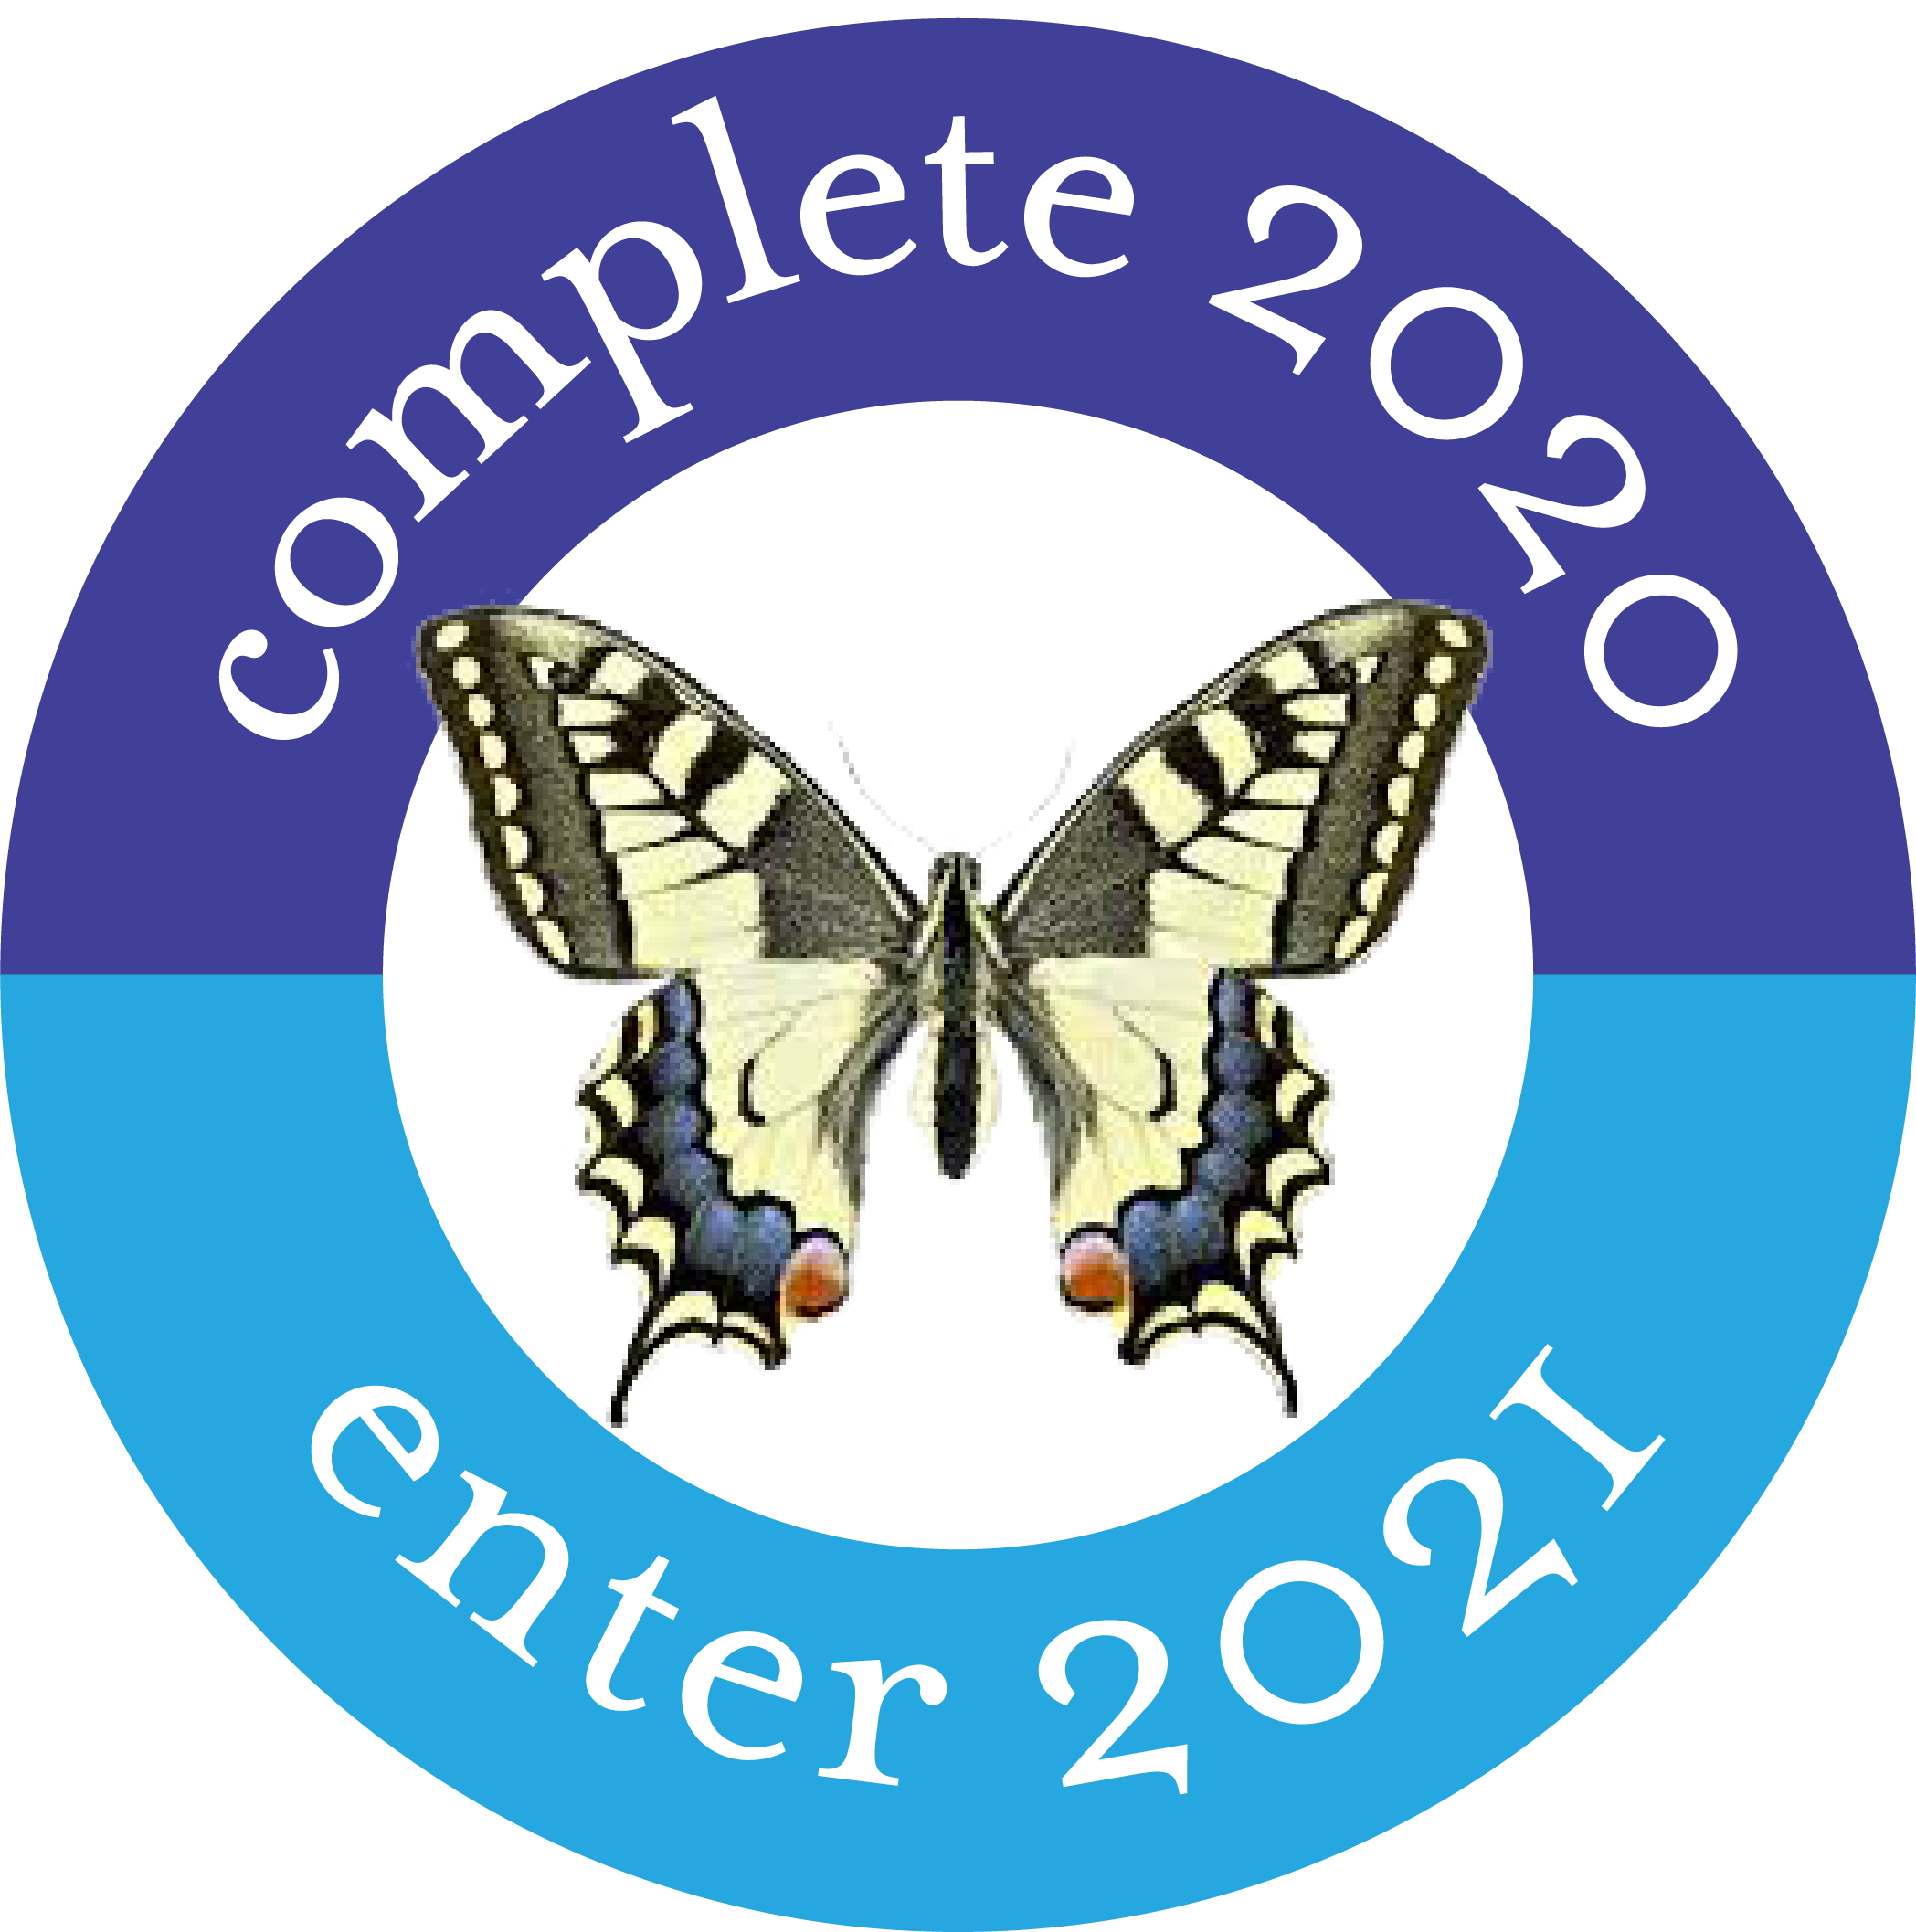 The words complete 2020, enter 2021 in a blue circle around a butterfly. Image for the Litus and the Lily.